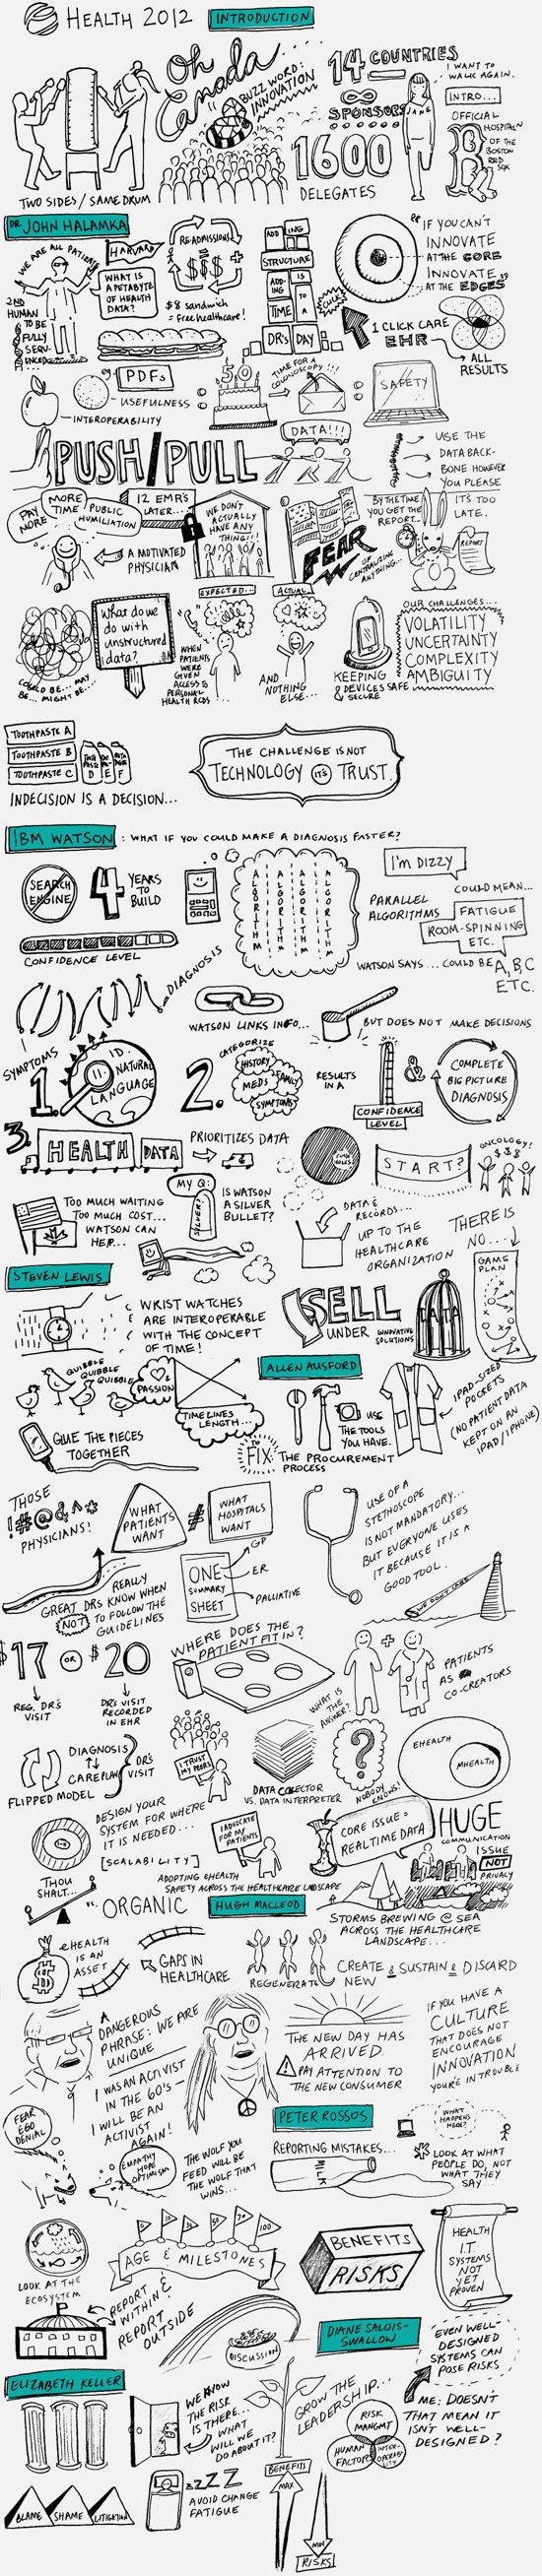 The other day I cam across a series lovely sketchnotes of the eHealth Conference in Vancouver, from Cassie McDaniel. Those sketchnotes are just from Day 1 — be sure to see Day 2 and Day 3 sketchnotes as well.